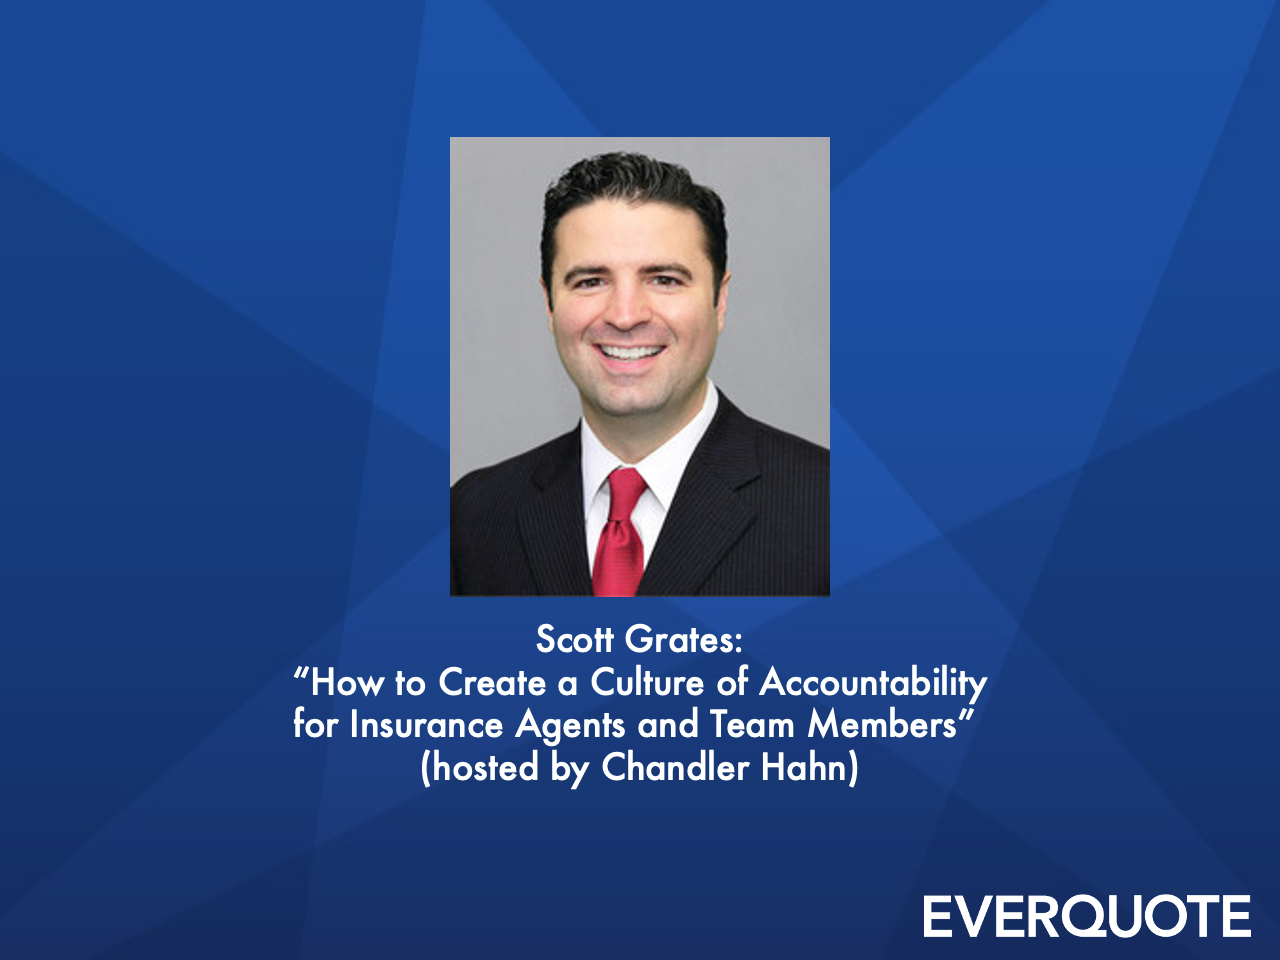 How to Create a Culture of Accountability for Insurance Agents and Team Members with Scott Grates